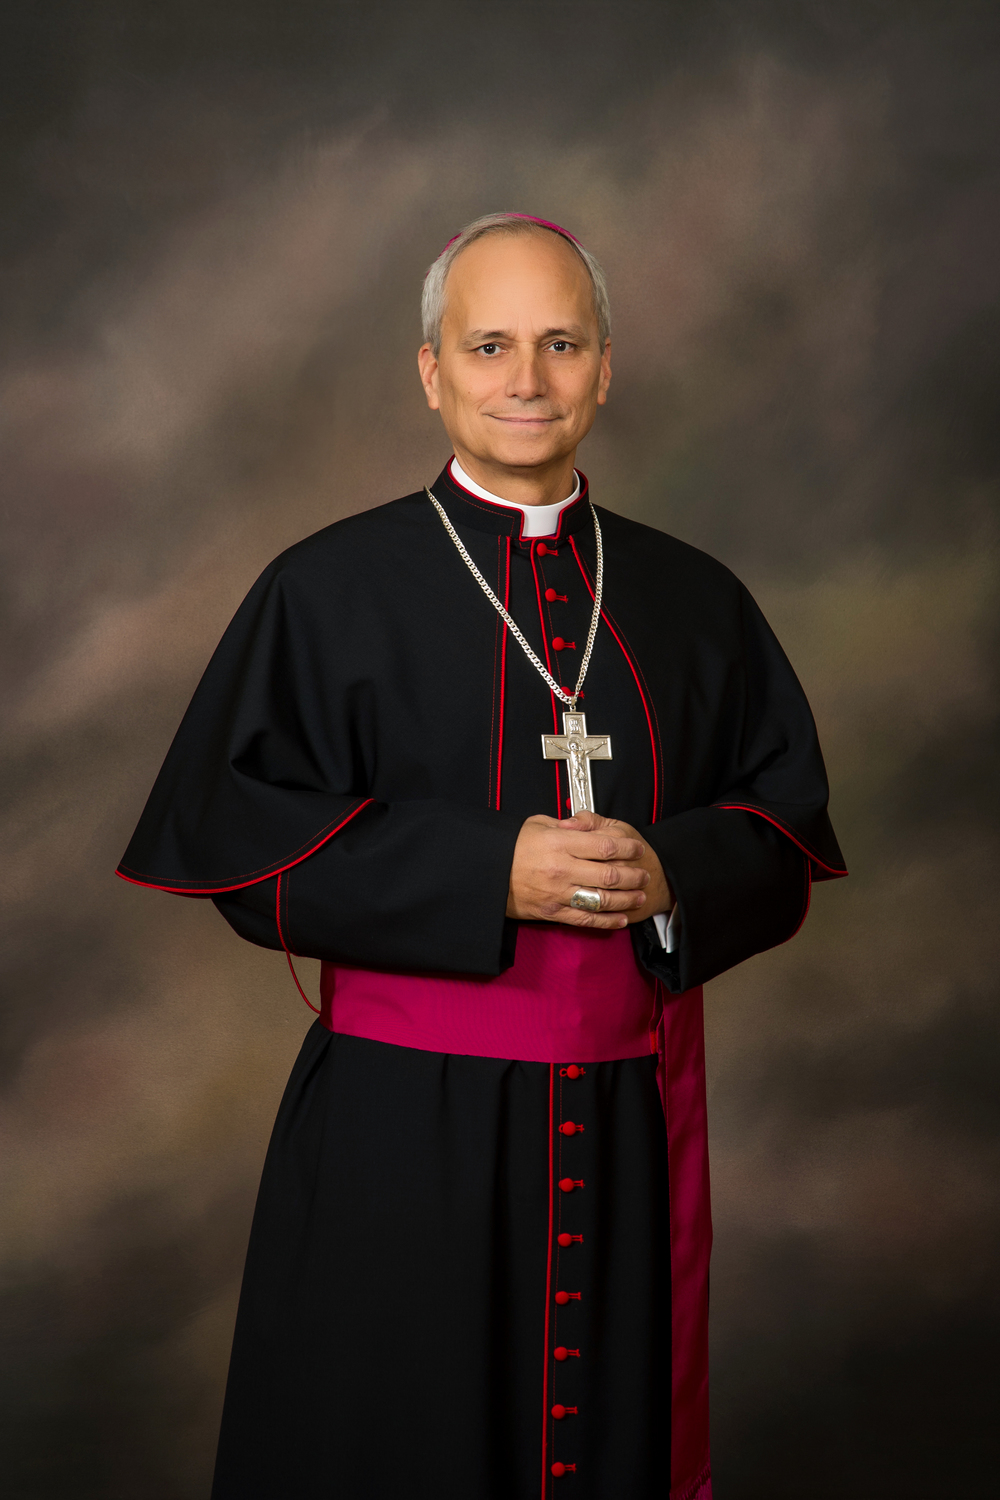 Bishop Robert Prevost, OSA